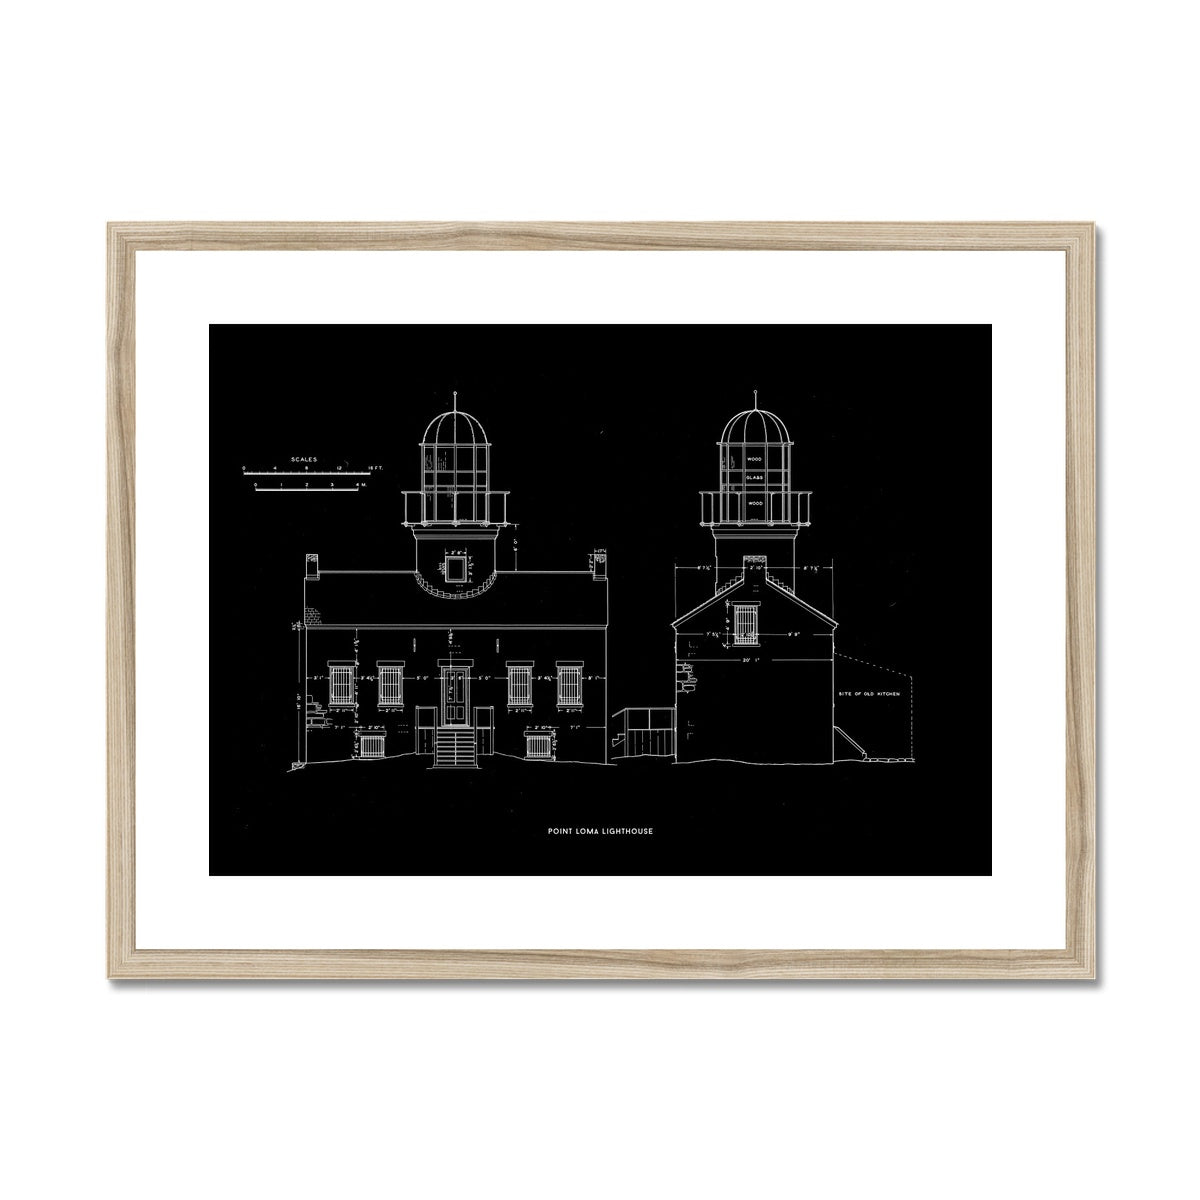 Point Loma Lighthouse - East and North Elevations - Black -  Framed & Mounted Print